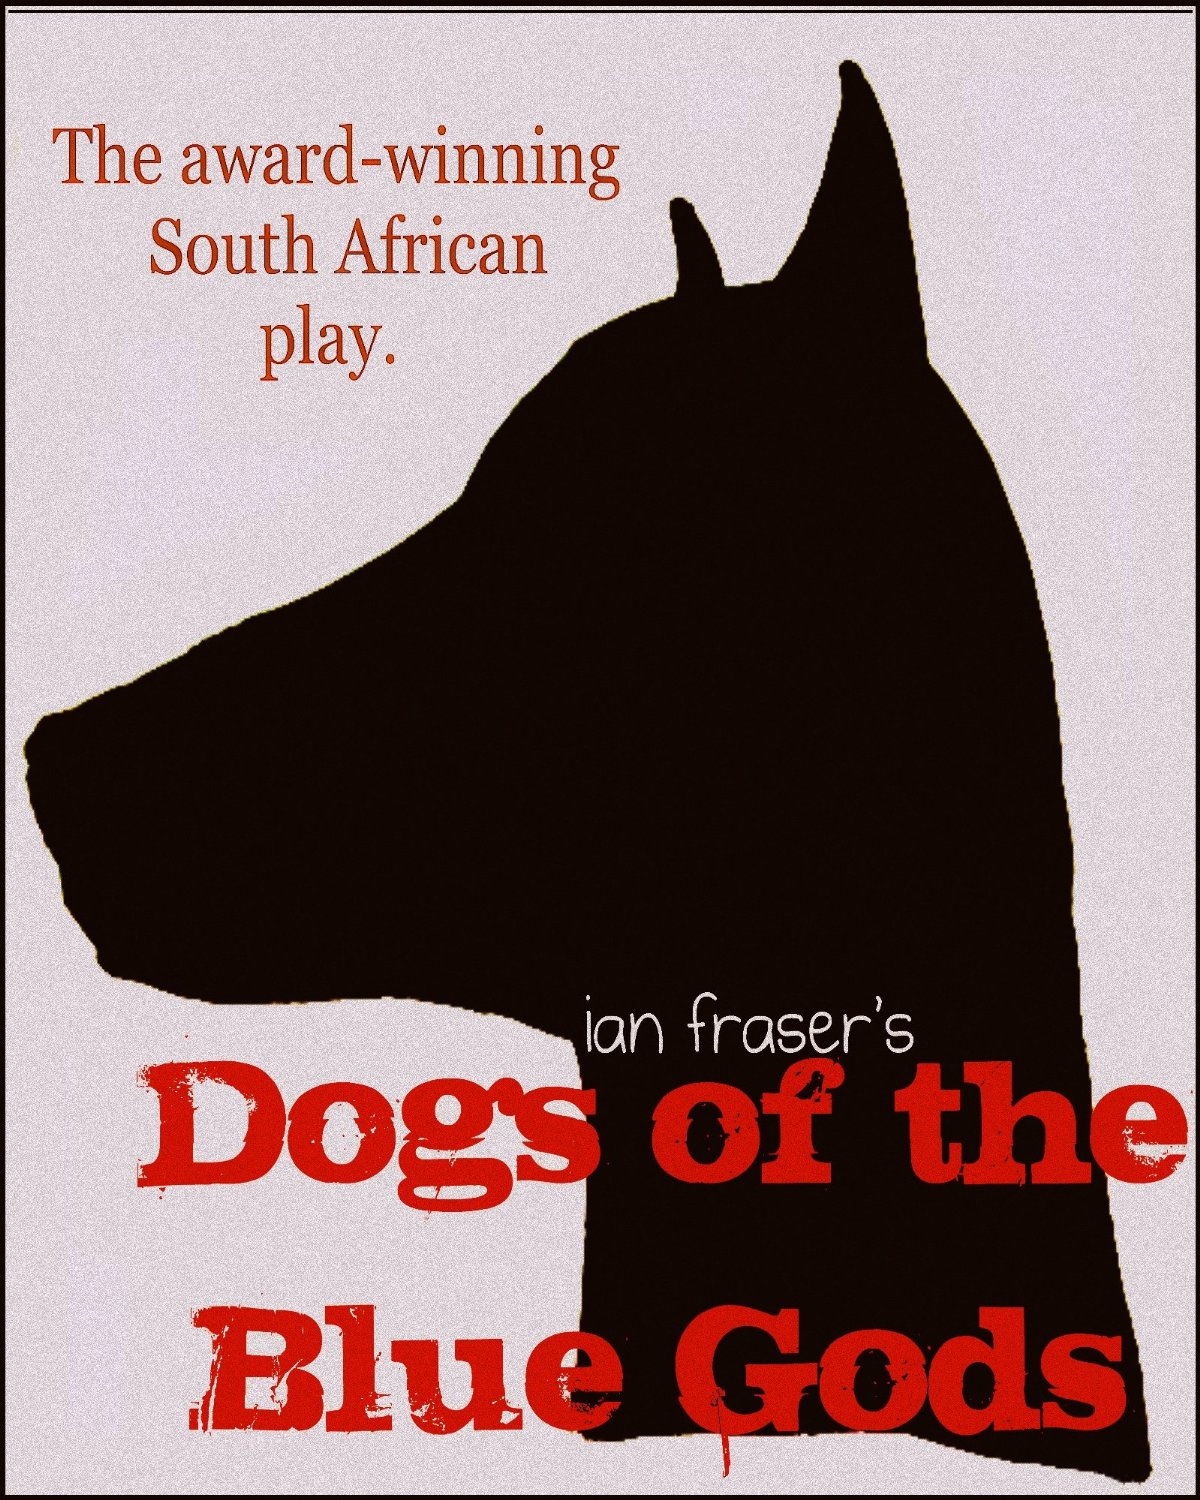 Dogs of the blue gods